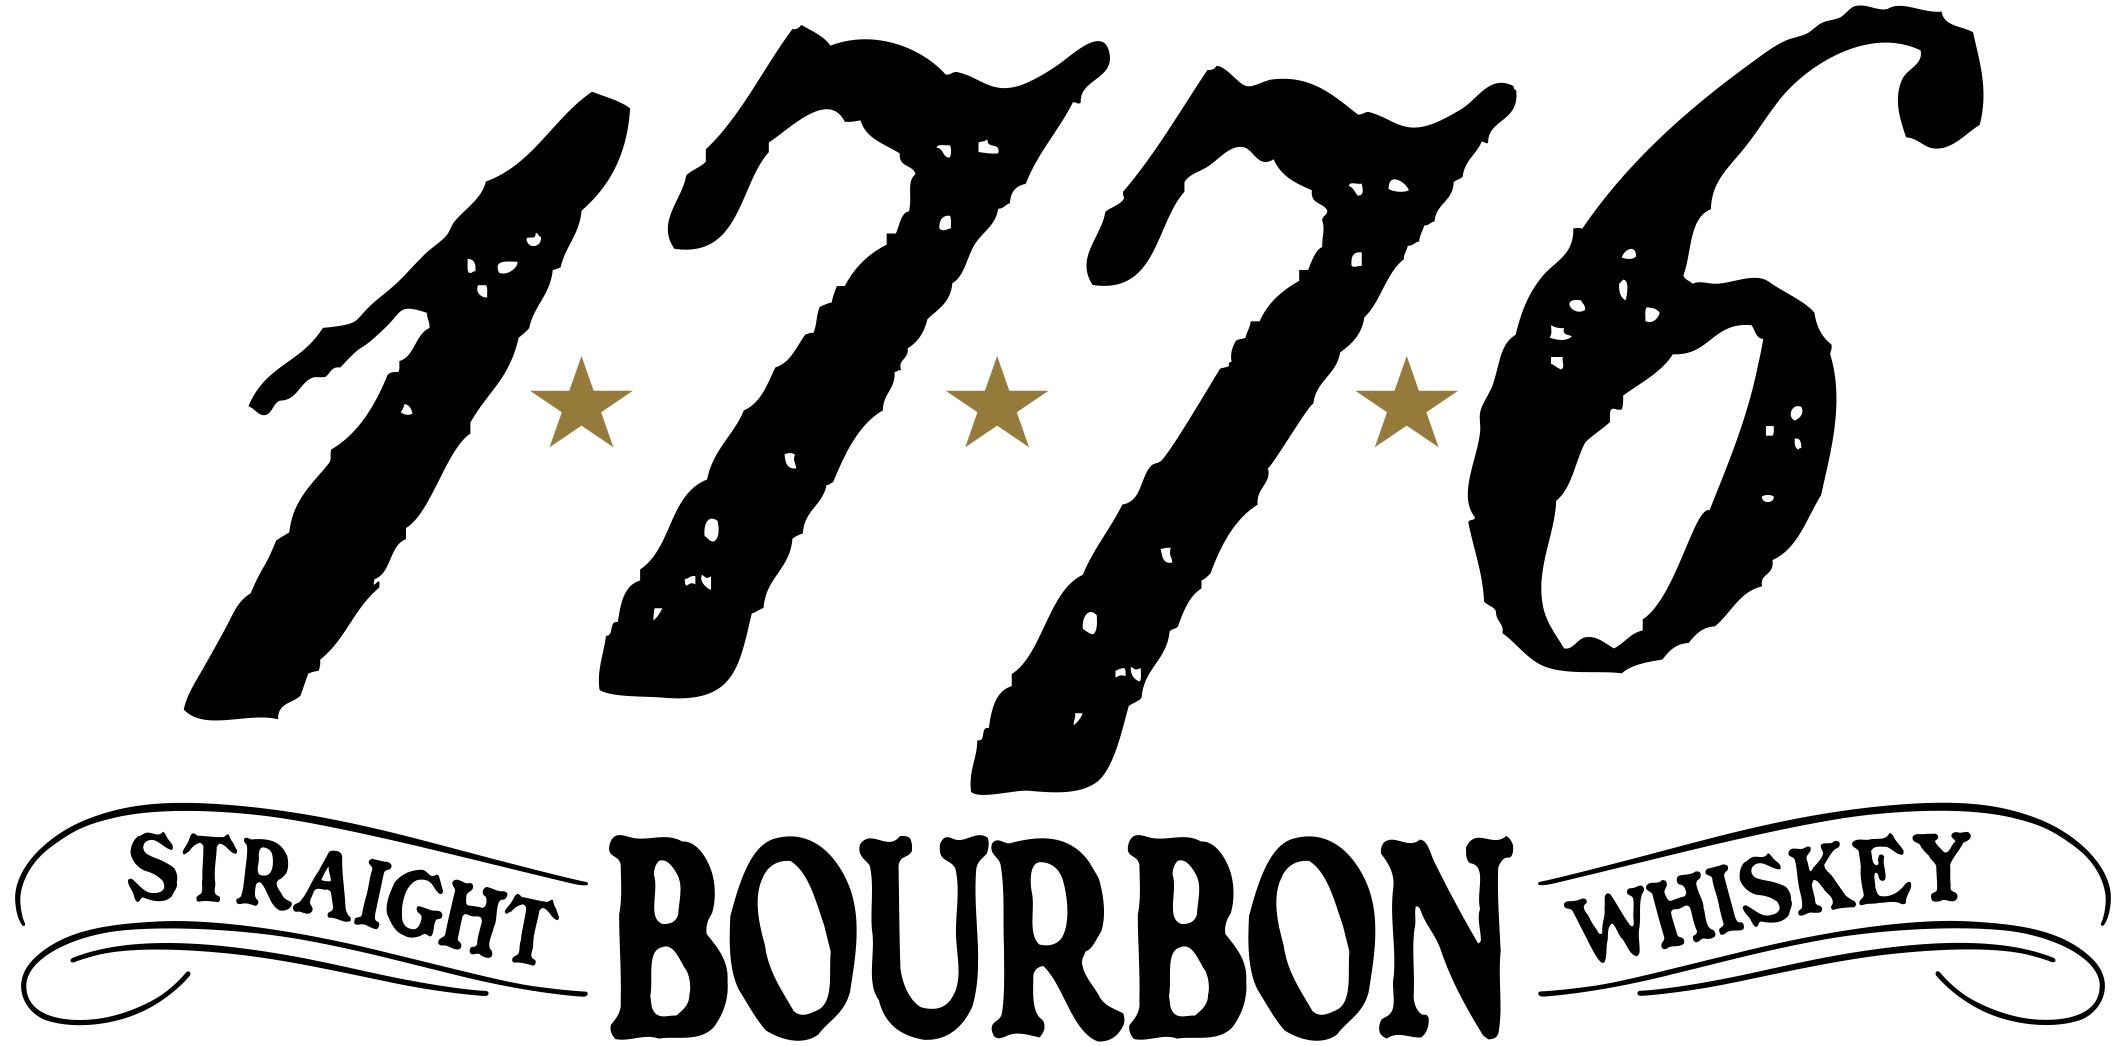 1776 Bourbon Whisky Logo | Bourbon barrel, Bourbon, Whisky